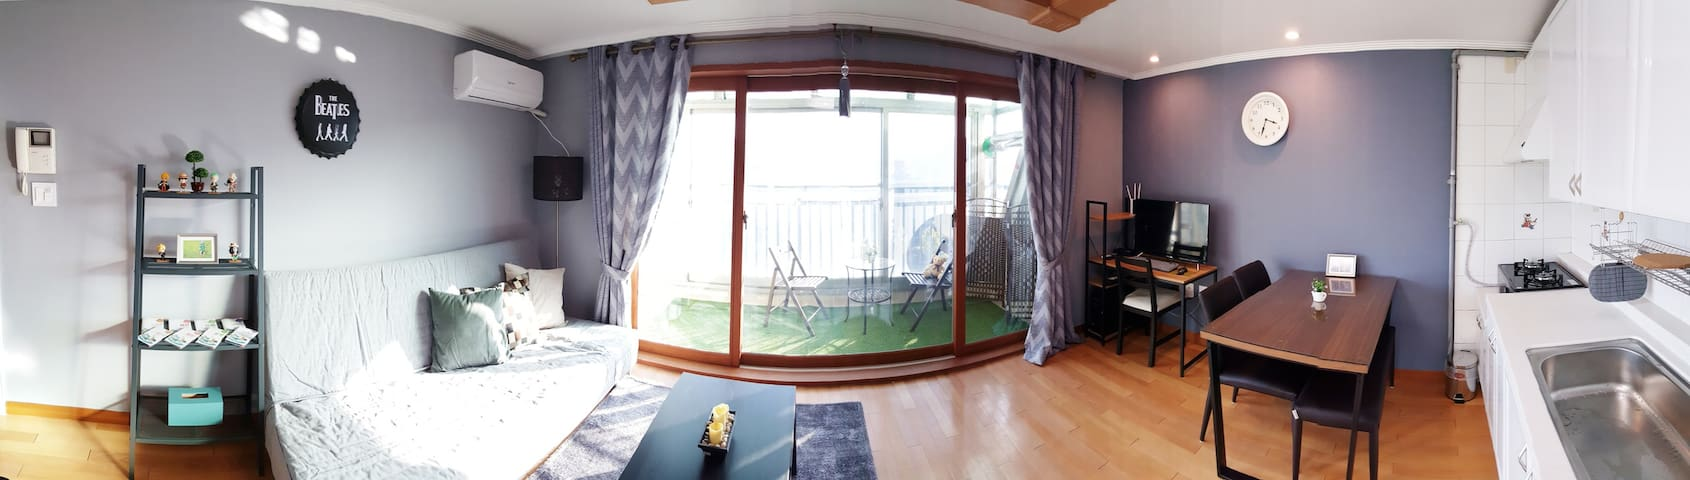 ★ 2 rooms ★, Center of Seoul - Jung-gu - Villa